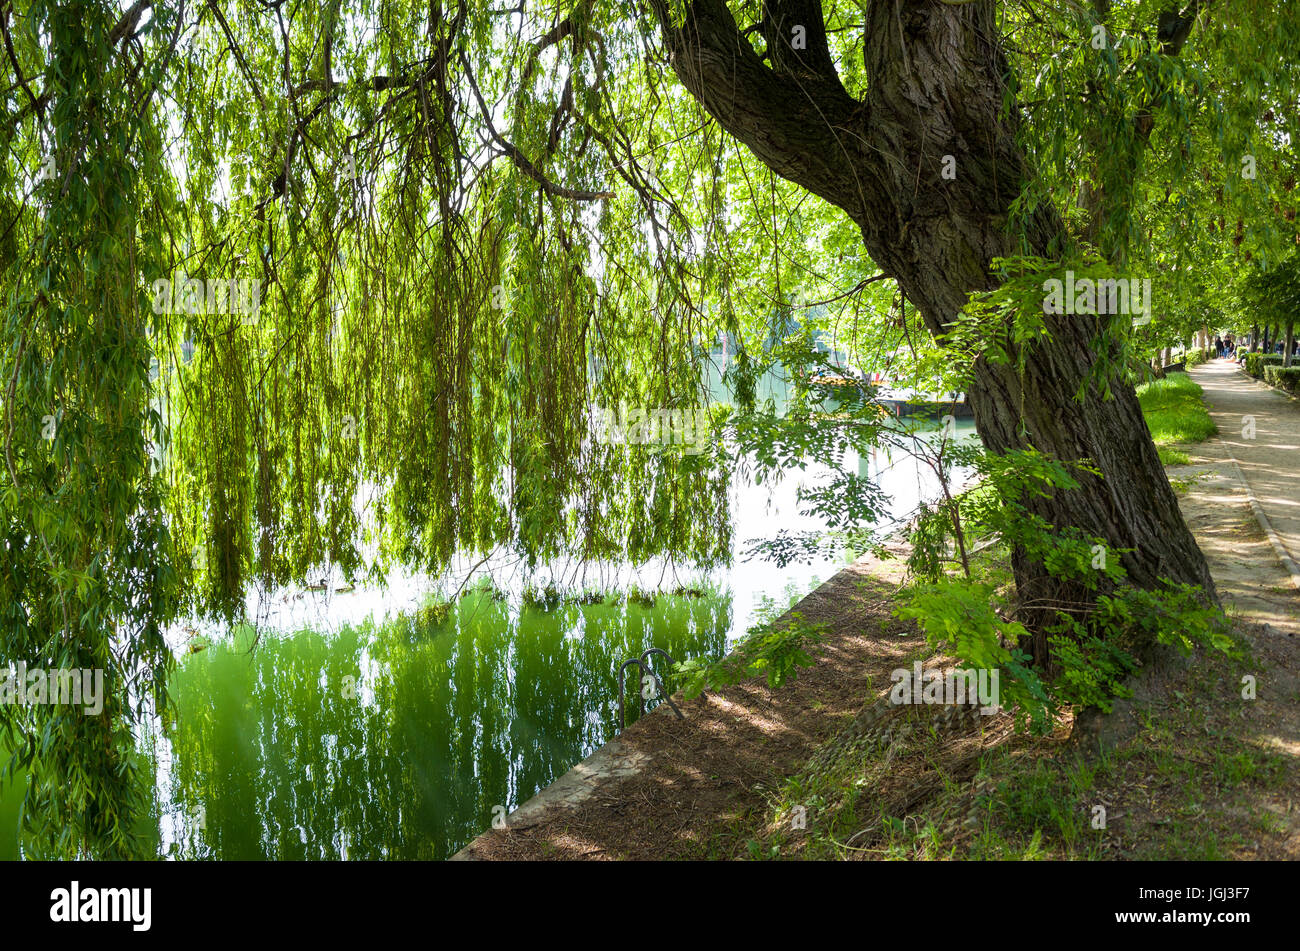 A weeping willow tree on the bank of the Marne river and its branches falling like a curtain till touching the water Stock Photo